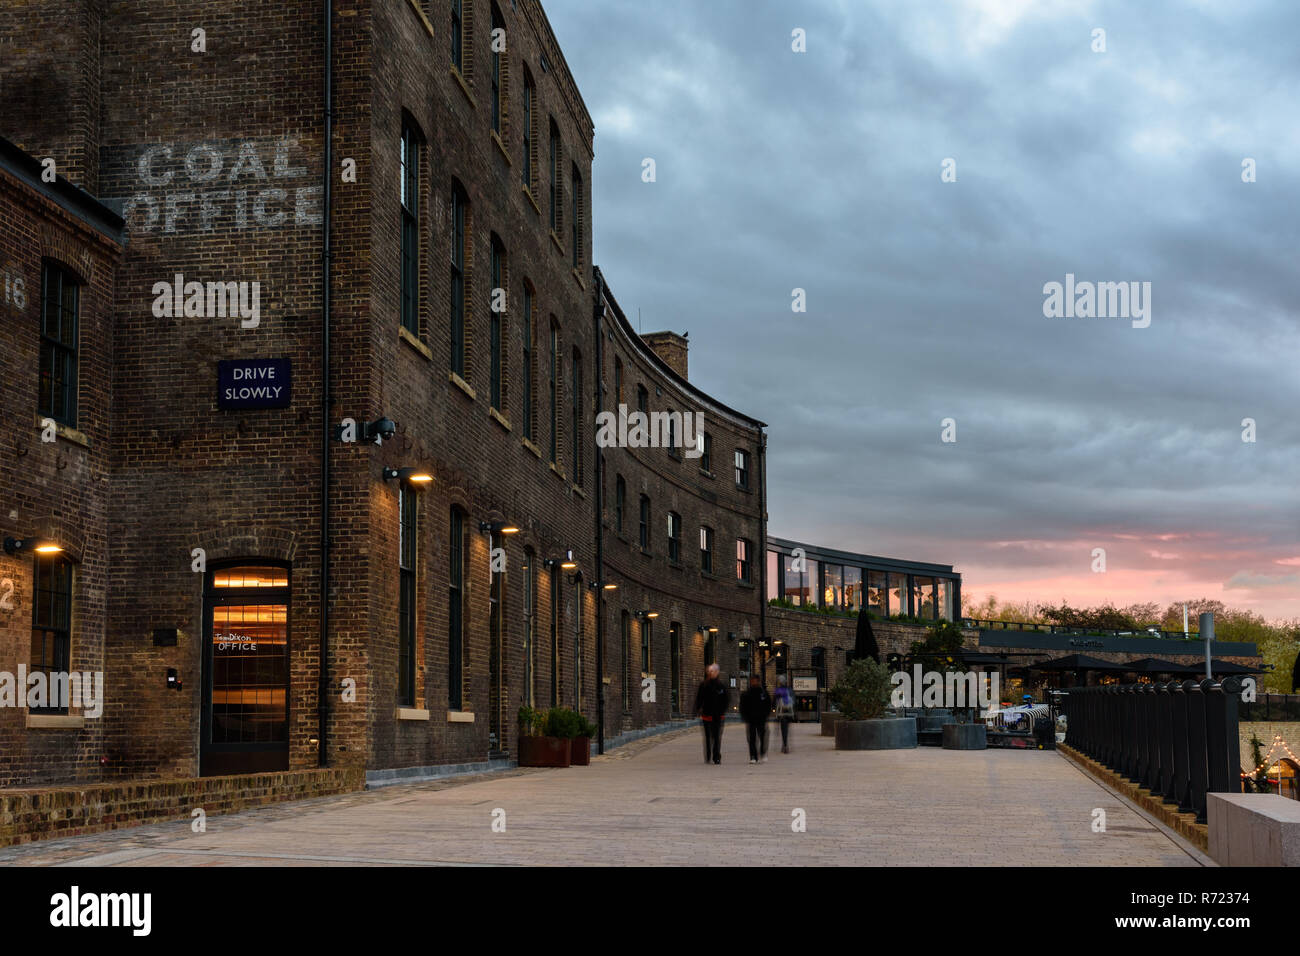 London, England, UK  November 21, 2018: The sun sets behind the Victorian brick Coal Office, once part of the King's Cross railway work and now a shop - Stock Image